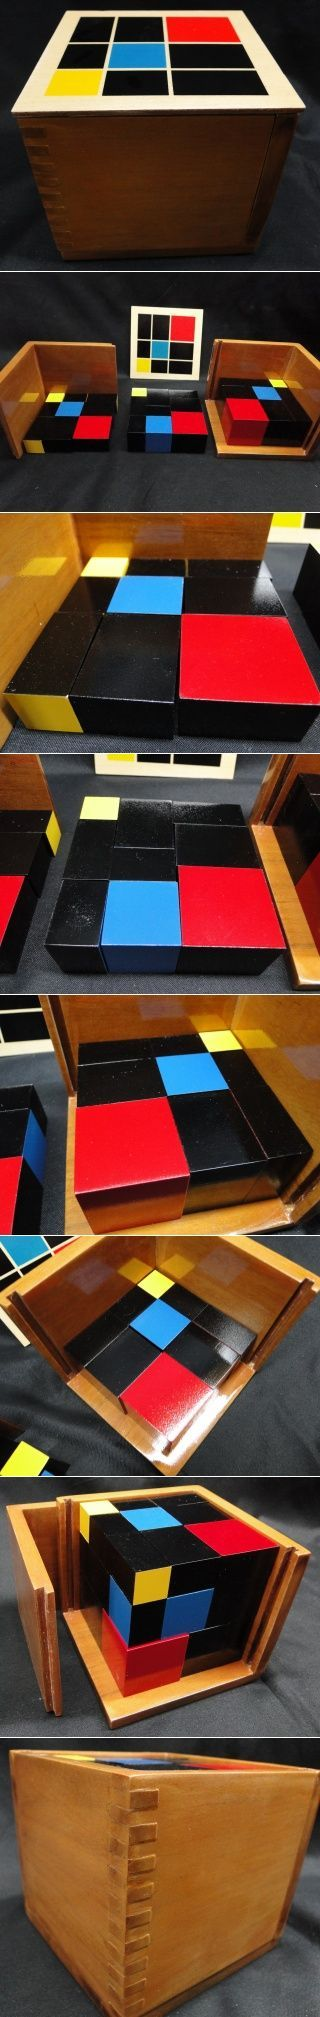 Trinomial Cubes The Trinomial Cube is a concrete representation of the algebraic formula (a + b + c)3. The factors of the equation are represented by cubes and prisms. The elementary Montessori child uses the Trinomial Cube as an activity of algebraic exploration. Contained in a wooden box with lid, with two sides that lift out.